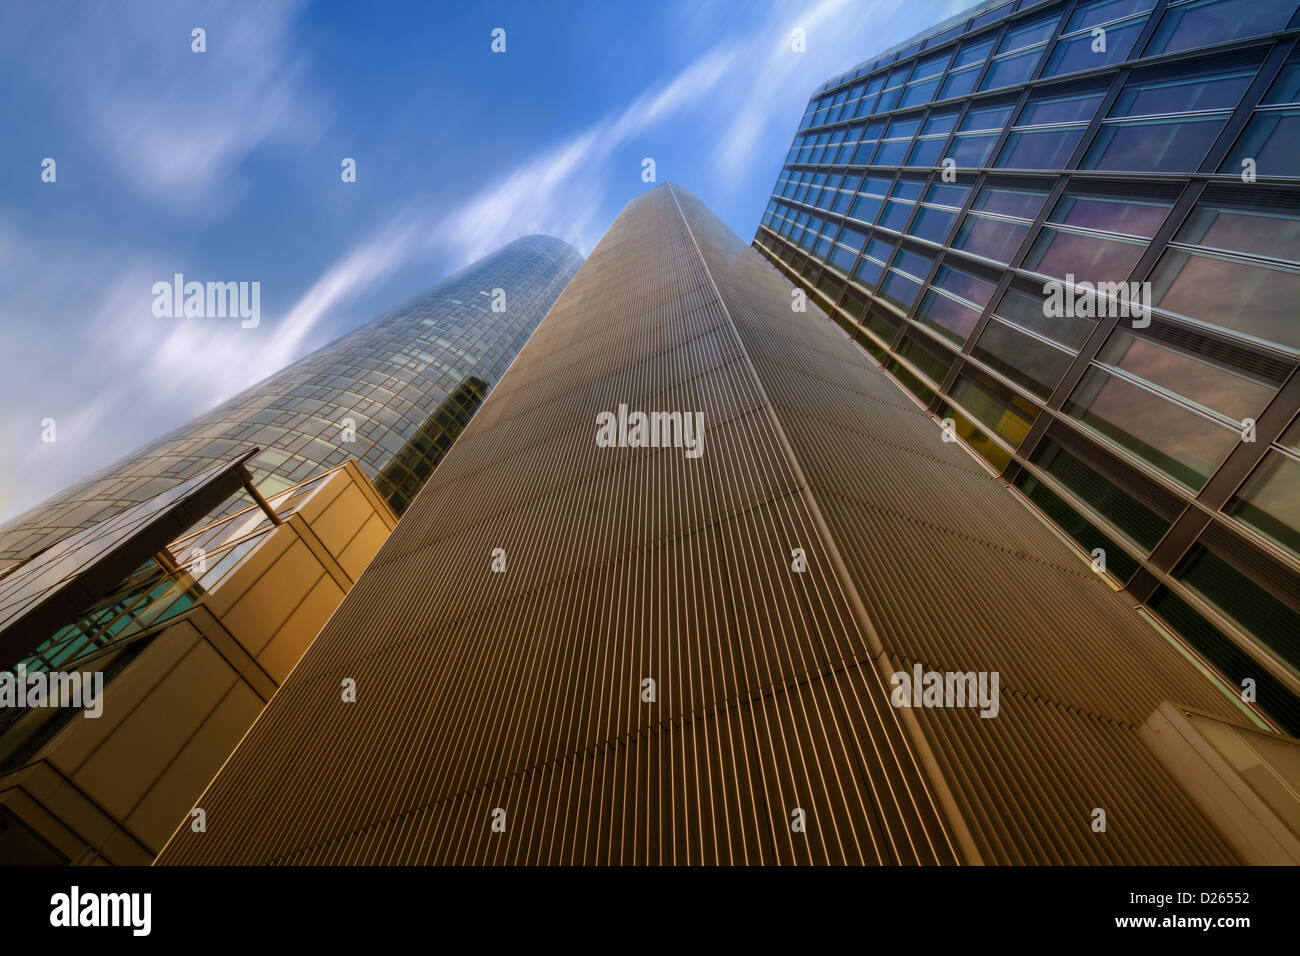 Lofty Heights: Converging Lines - Stock Image